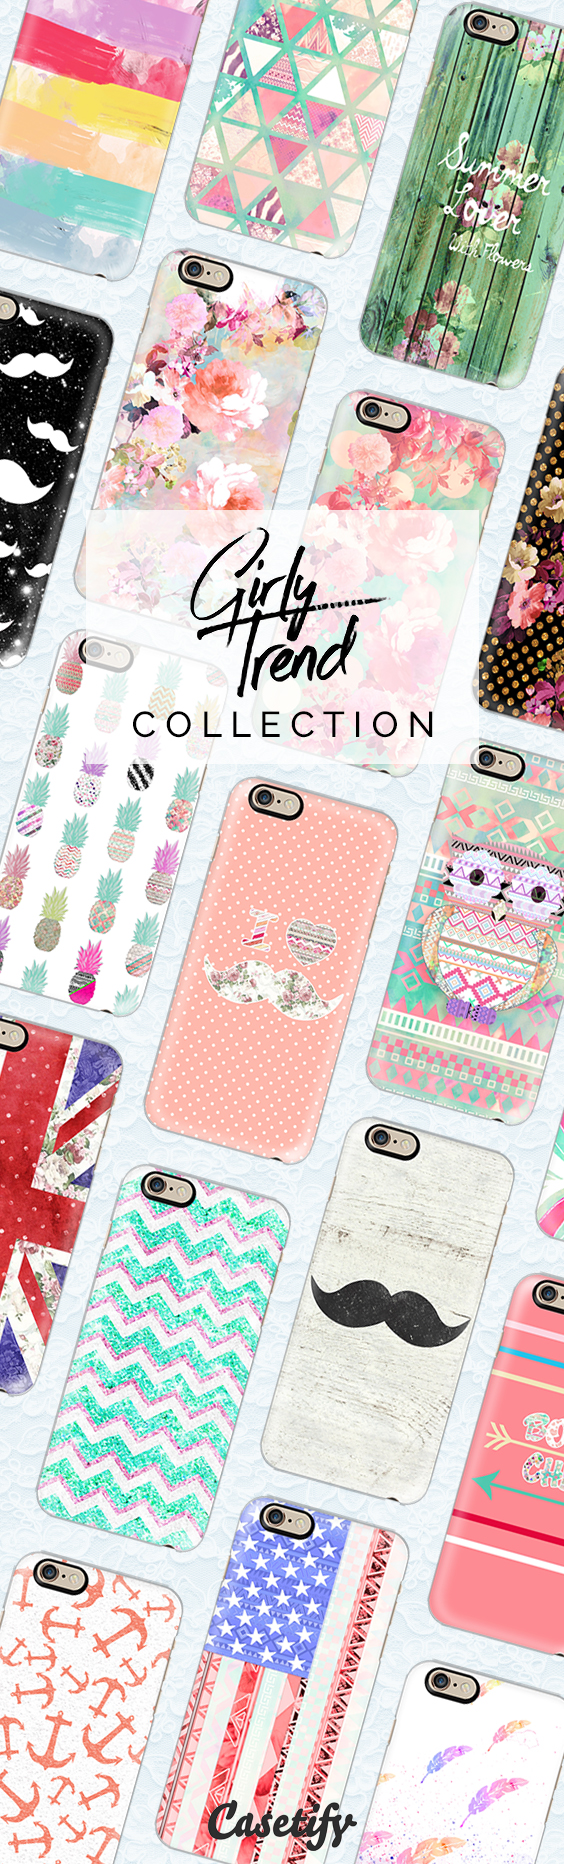 What's trending among the #girls? Shop for our #GirlyTrend collection here: https://www.casetify.com/girlytrend/collection | @casetify